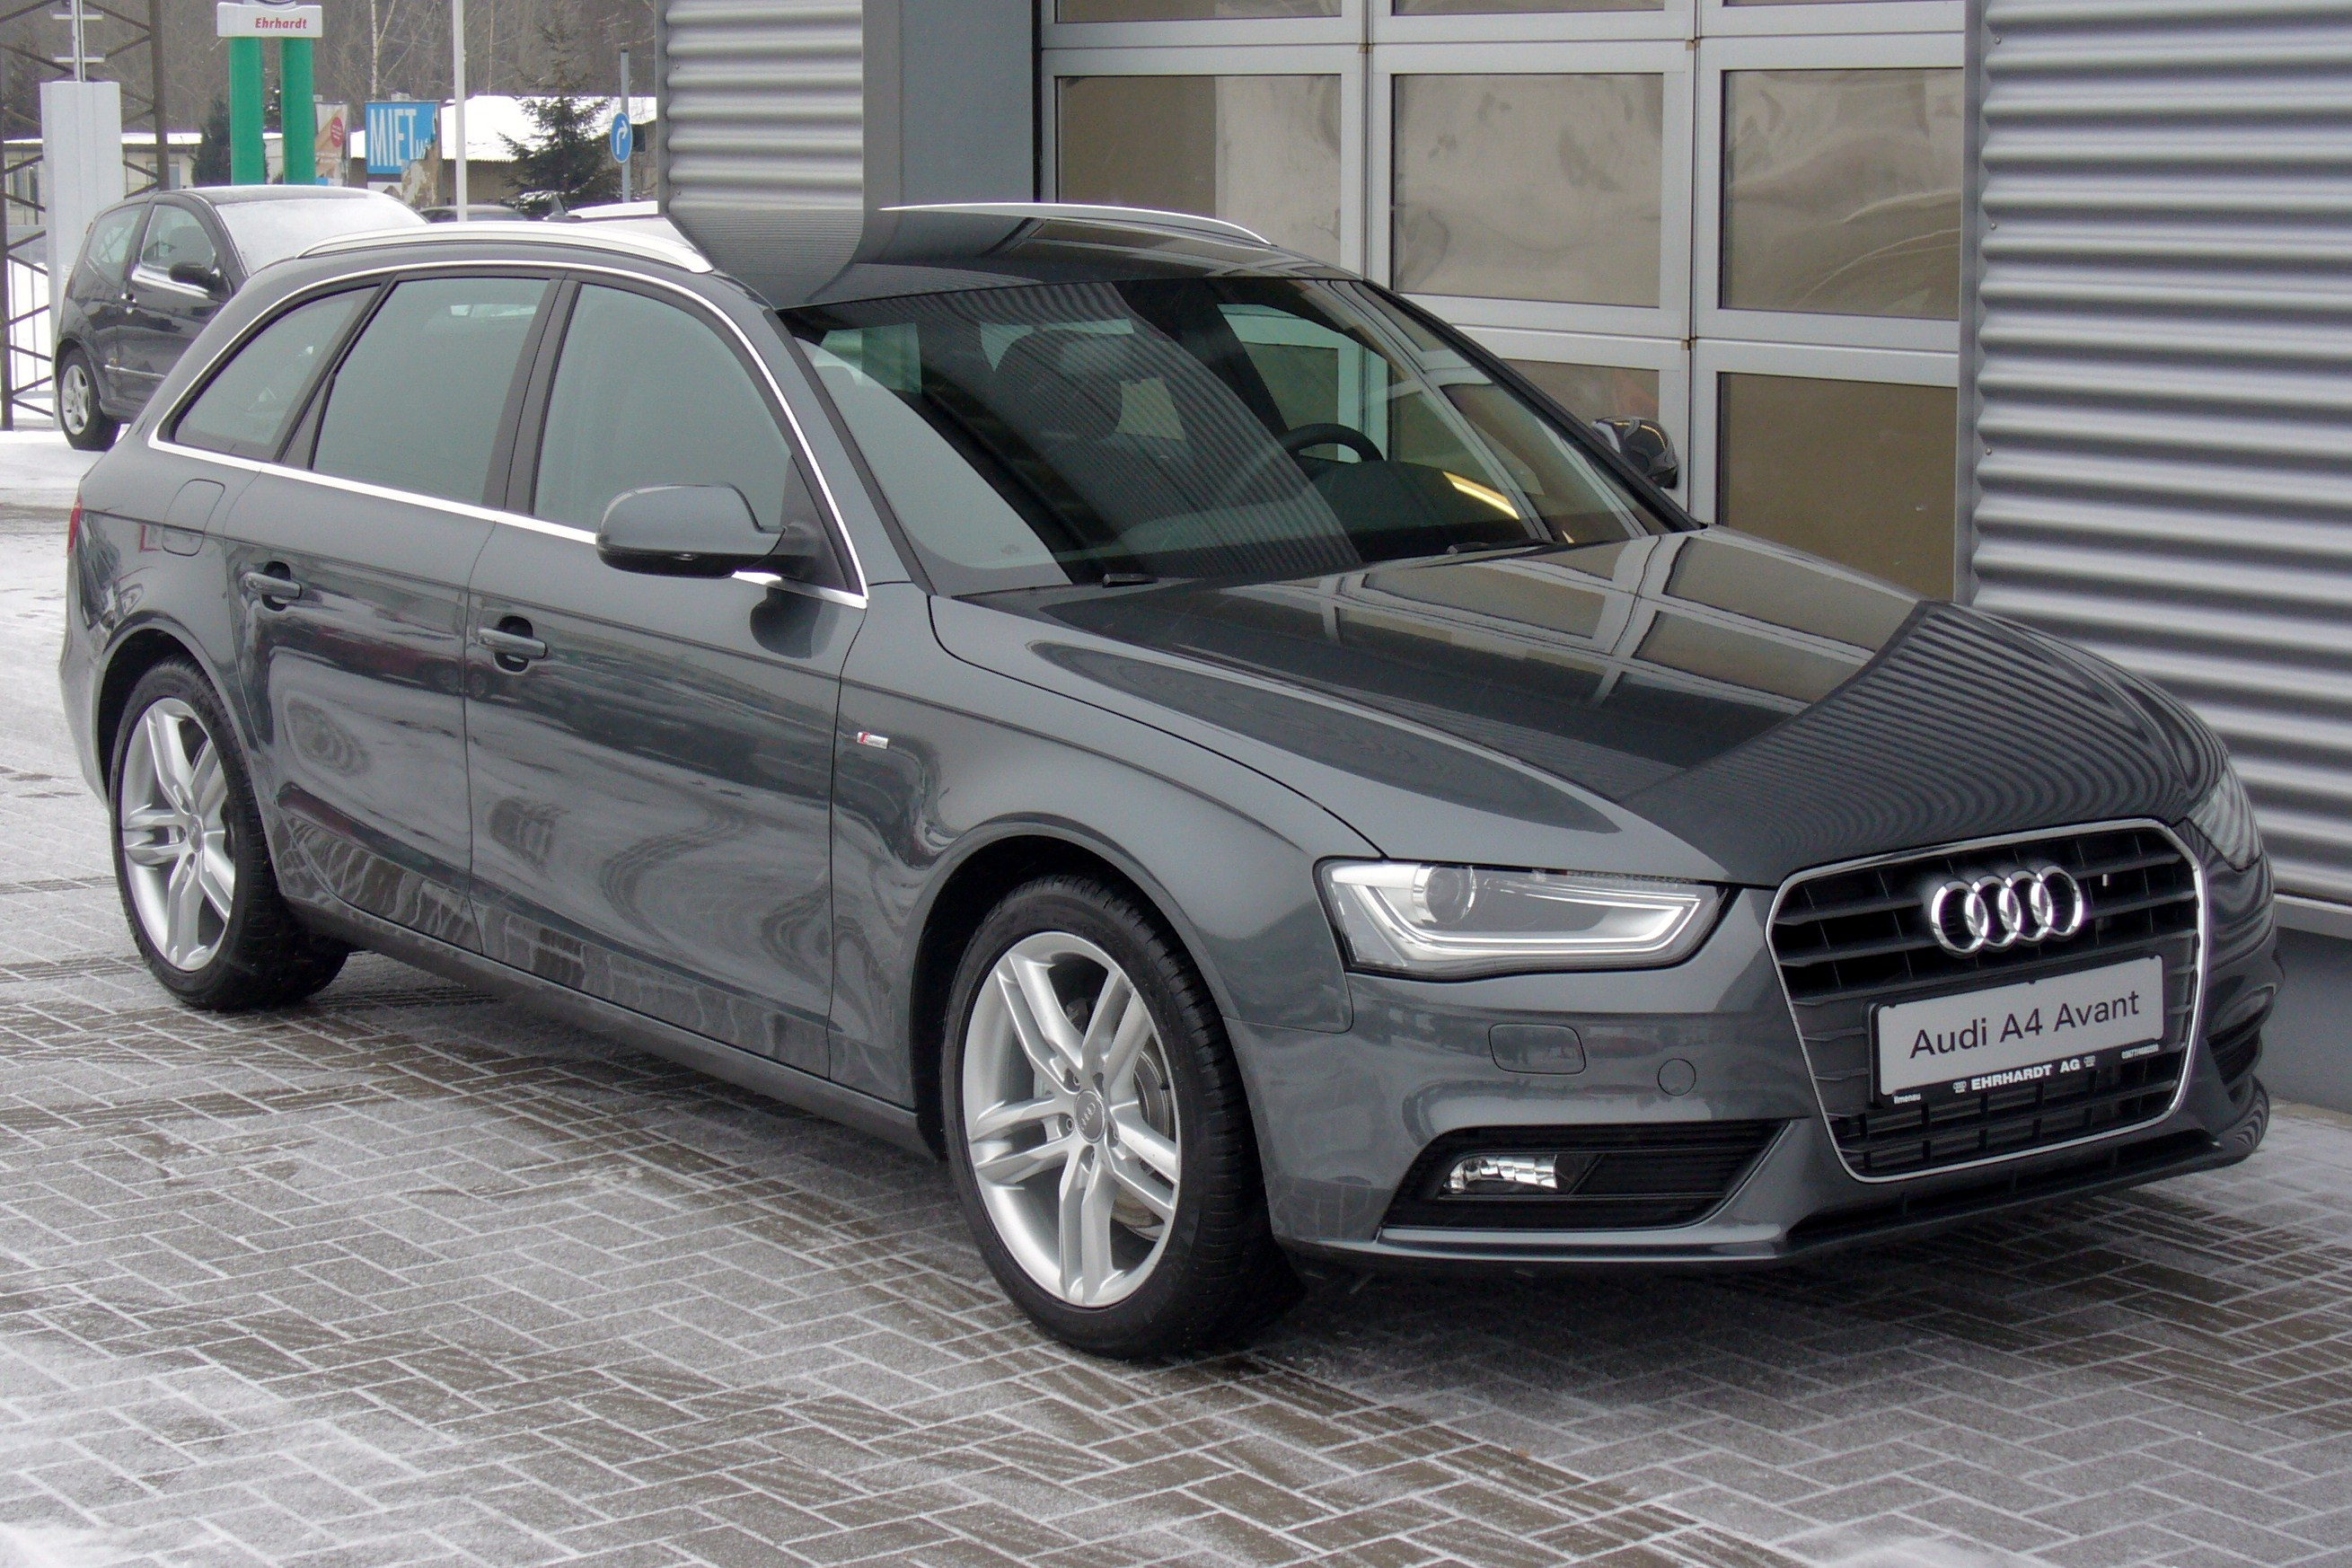 audi a4 avant 2 0 tdi ambition photos and comments. Black Bedroom Furniture Sets. Home Design Ideas